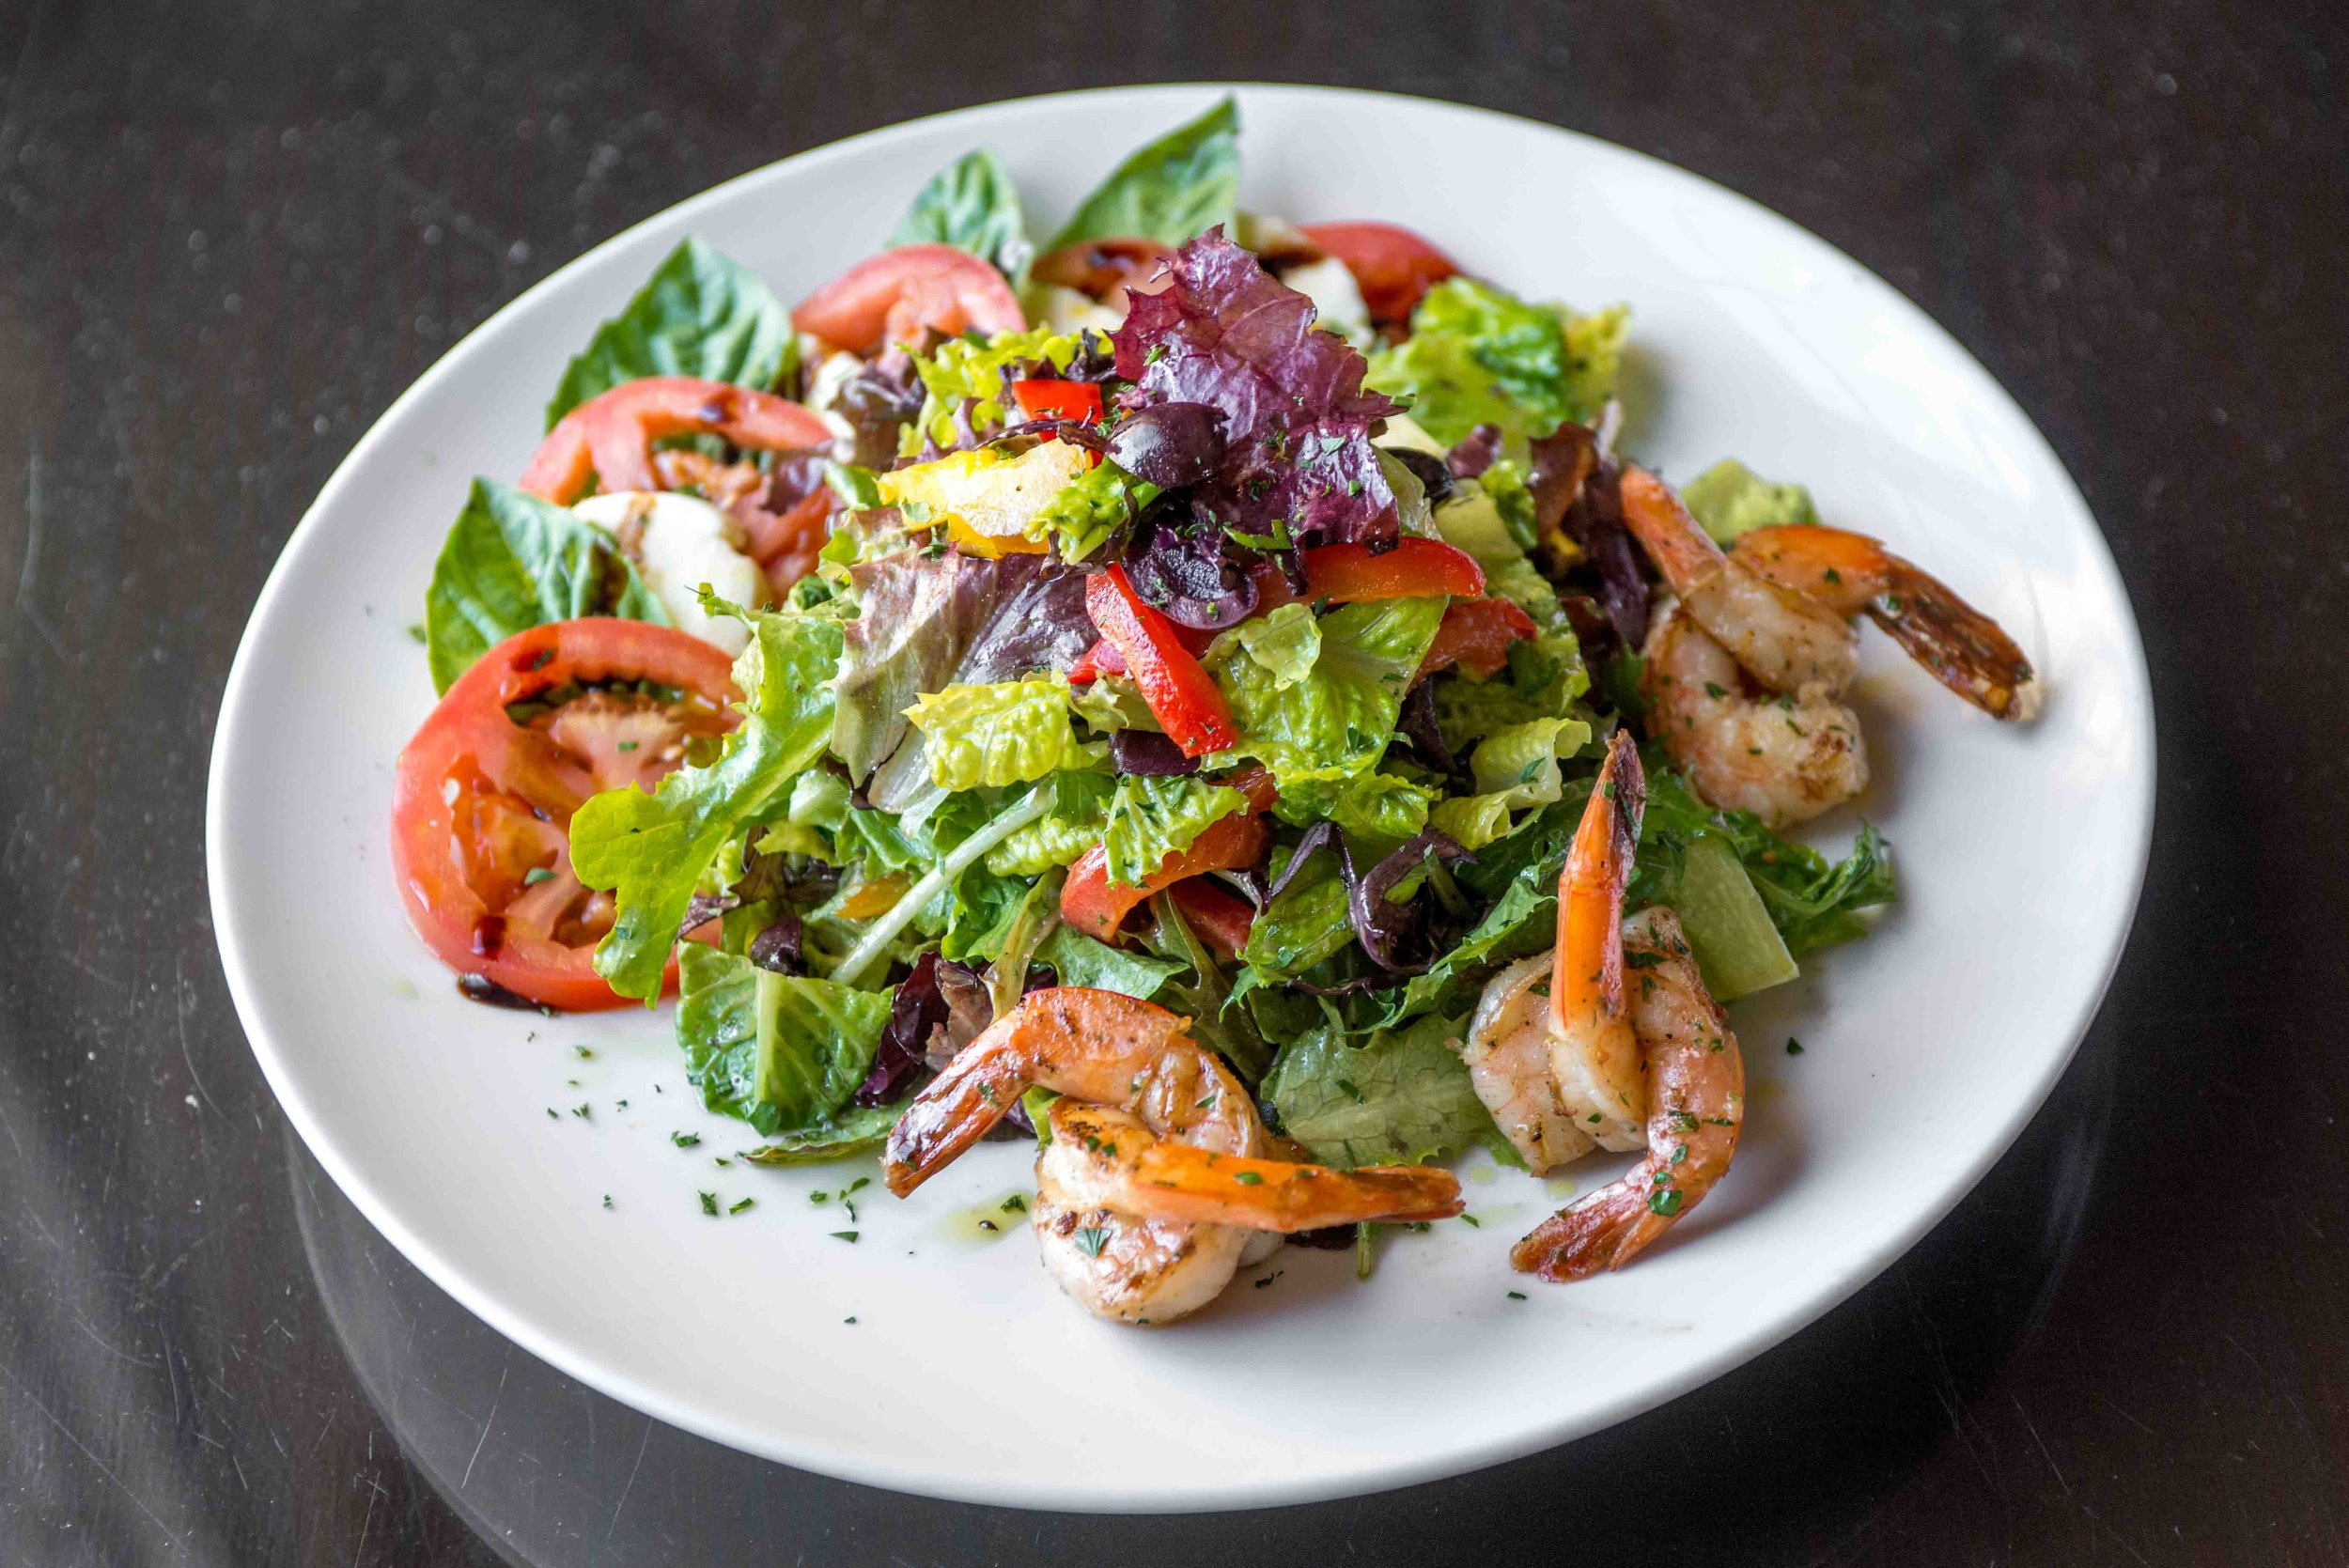 Grilled Shrimp Salad with Balsamic Vinaigrette